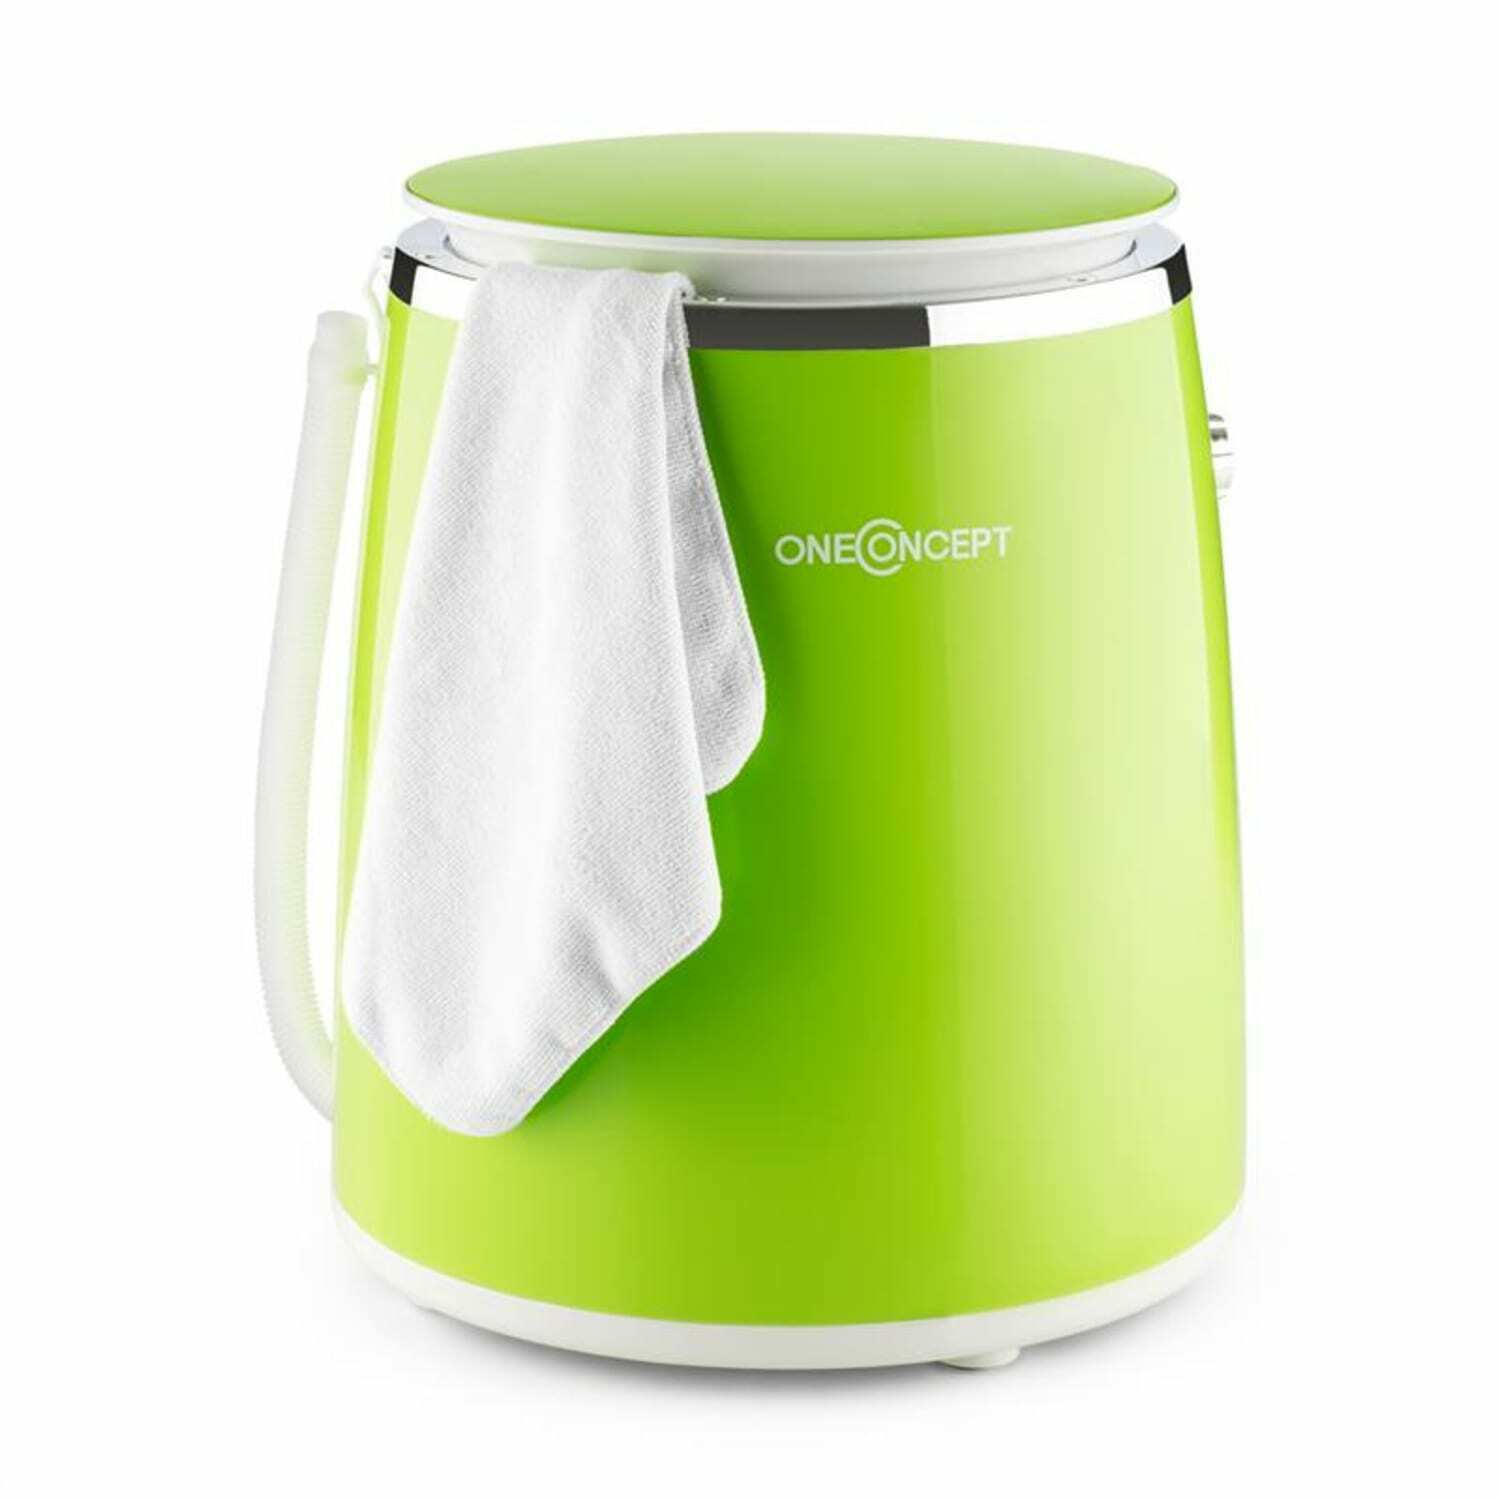 mini machine laver avec timer lave linge portable de camping tanche 380w vert eur 83 99. Black Bedroom Furniture Sets. Home Design Ideas